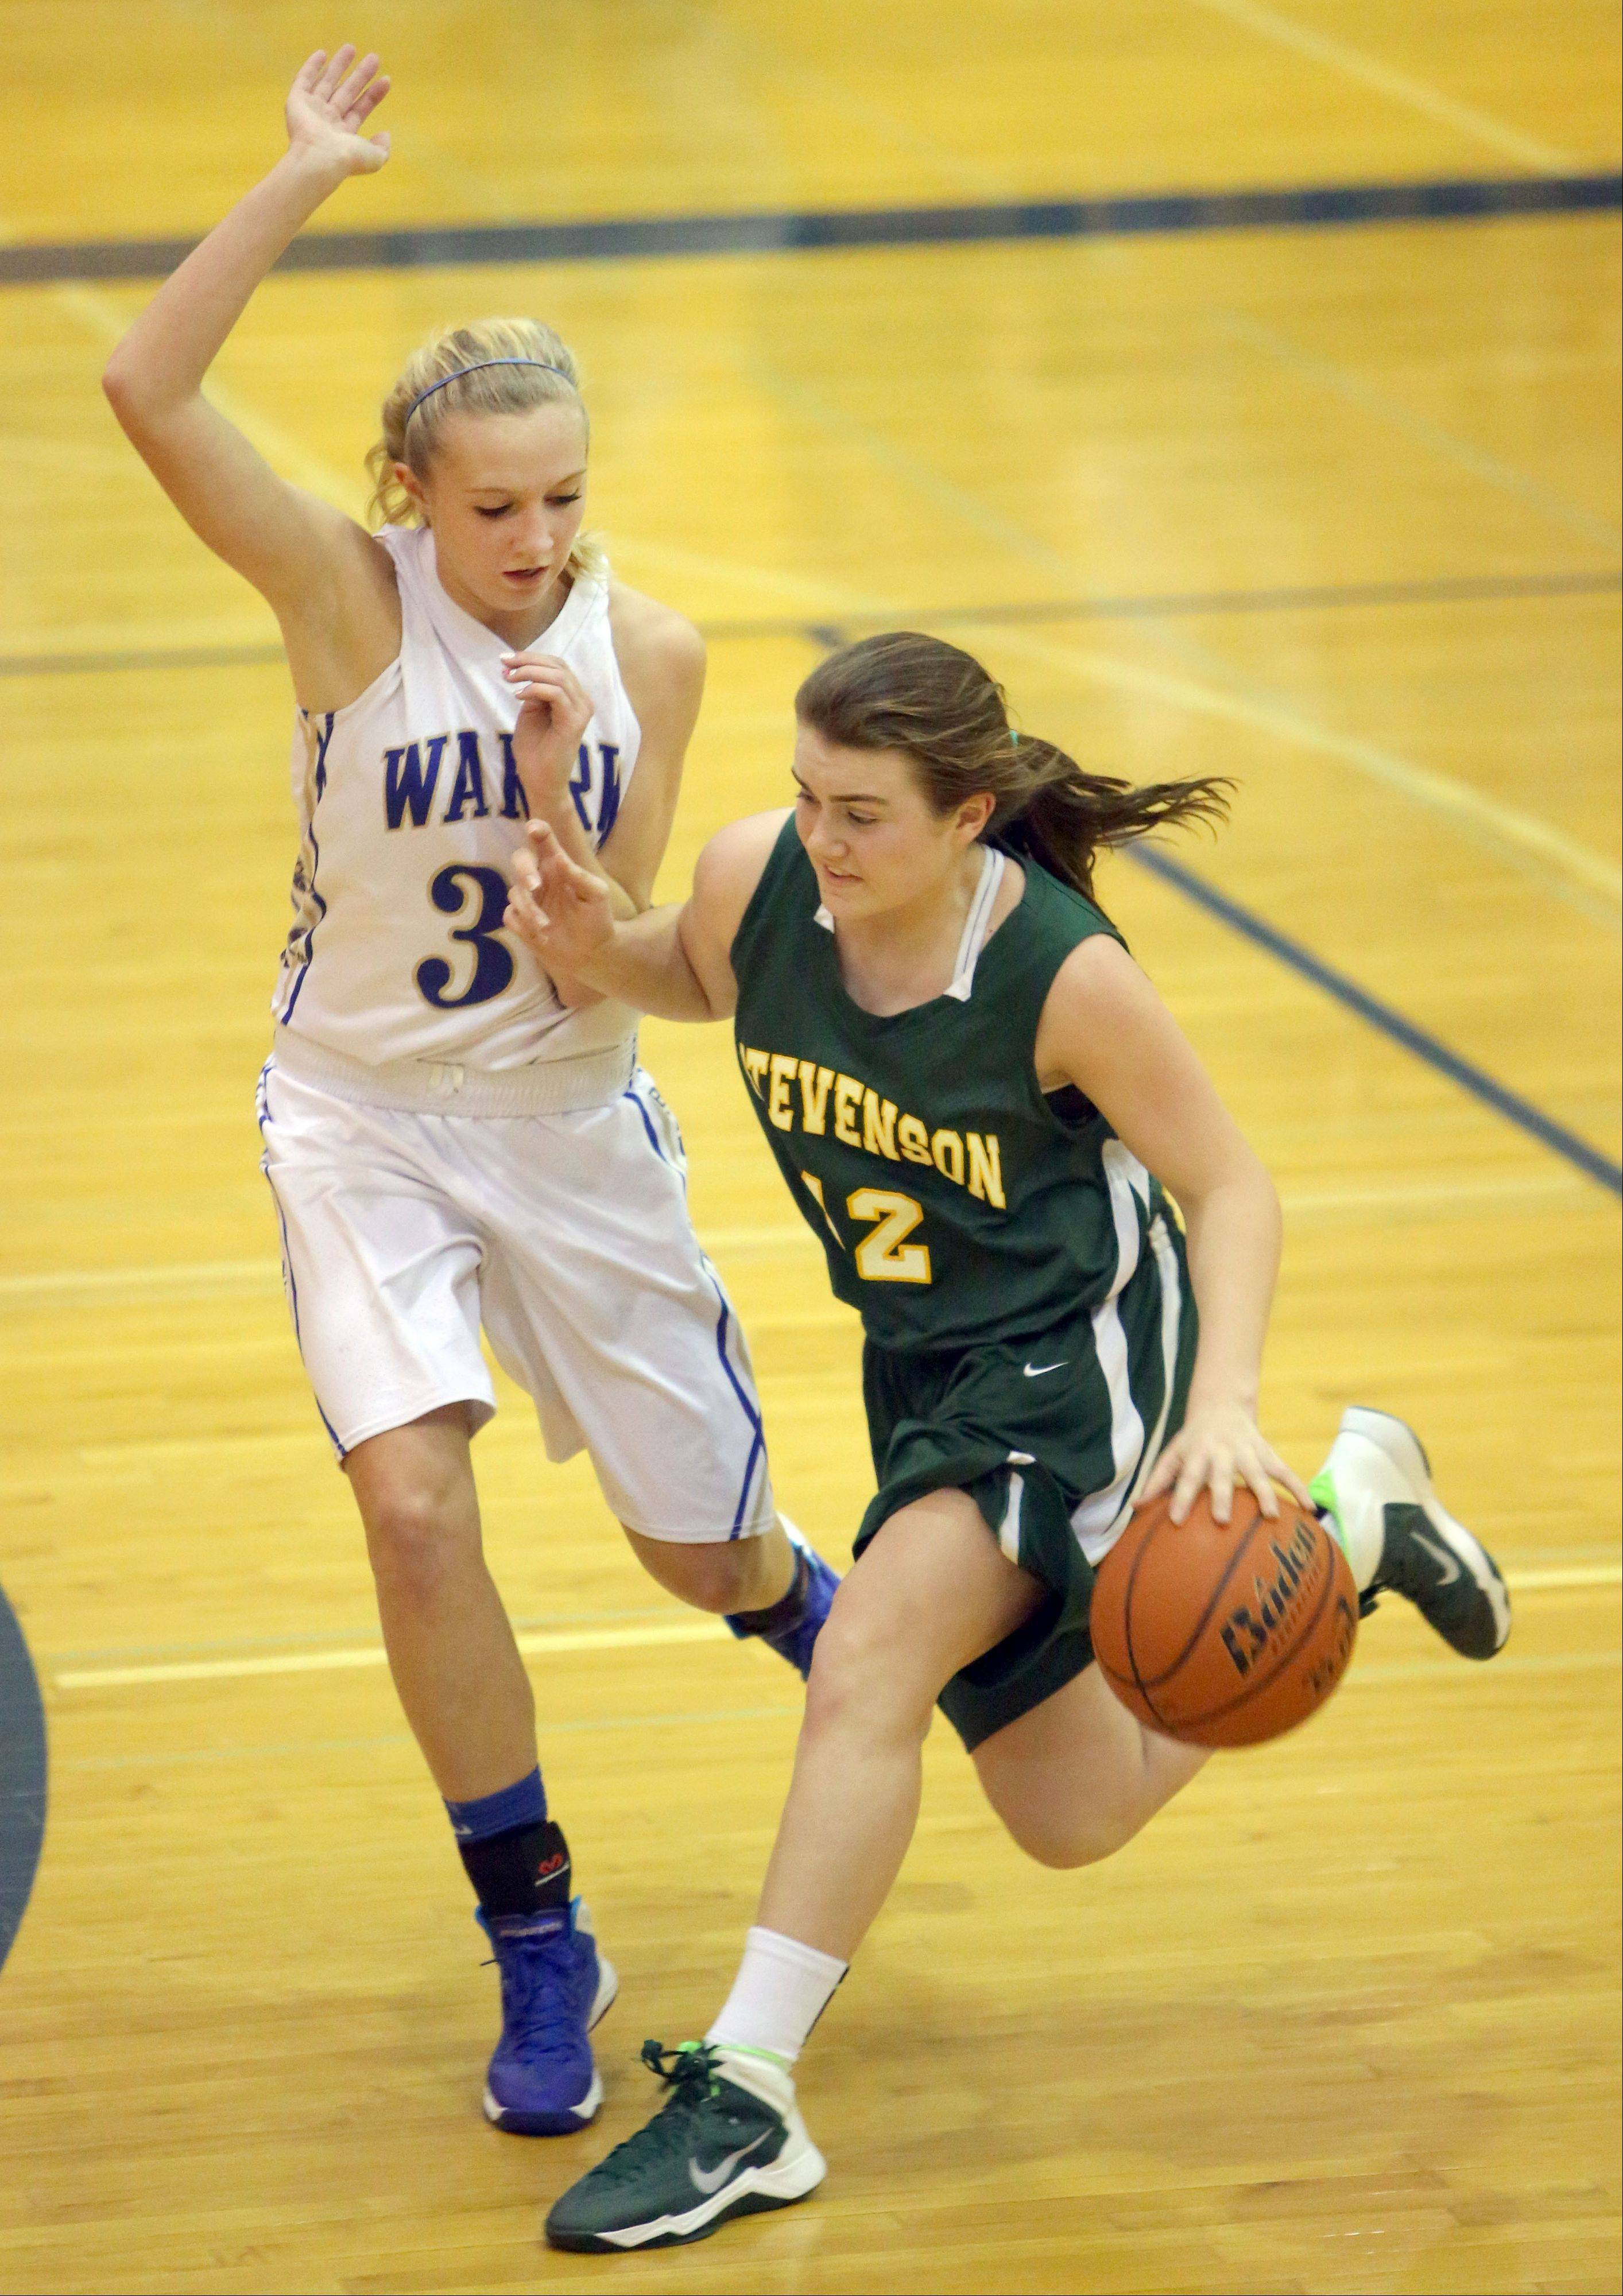 Stevenson's Ashley Richardson, right, drives on Warren's Sammi Jo Nixon on Tuesday night in Gurnee.